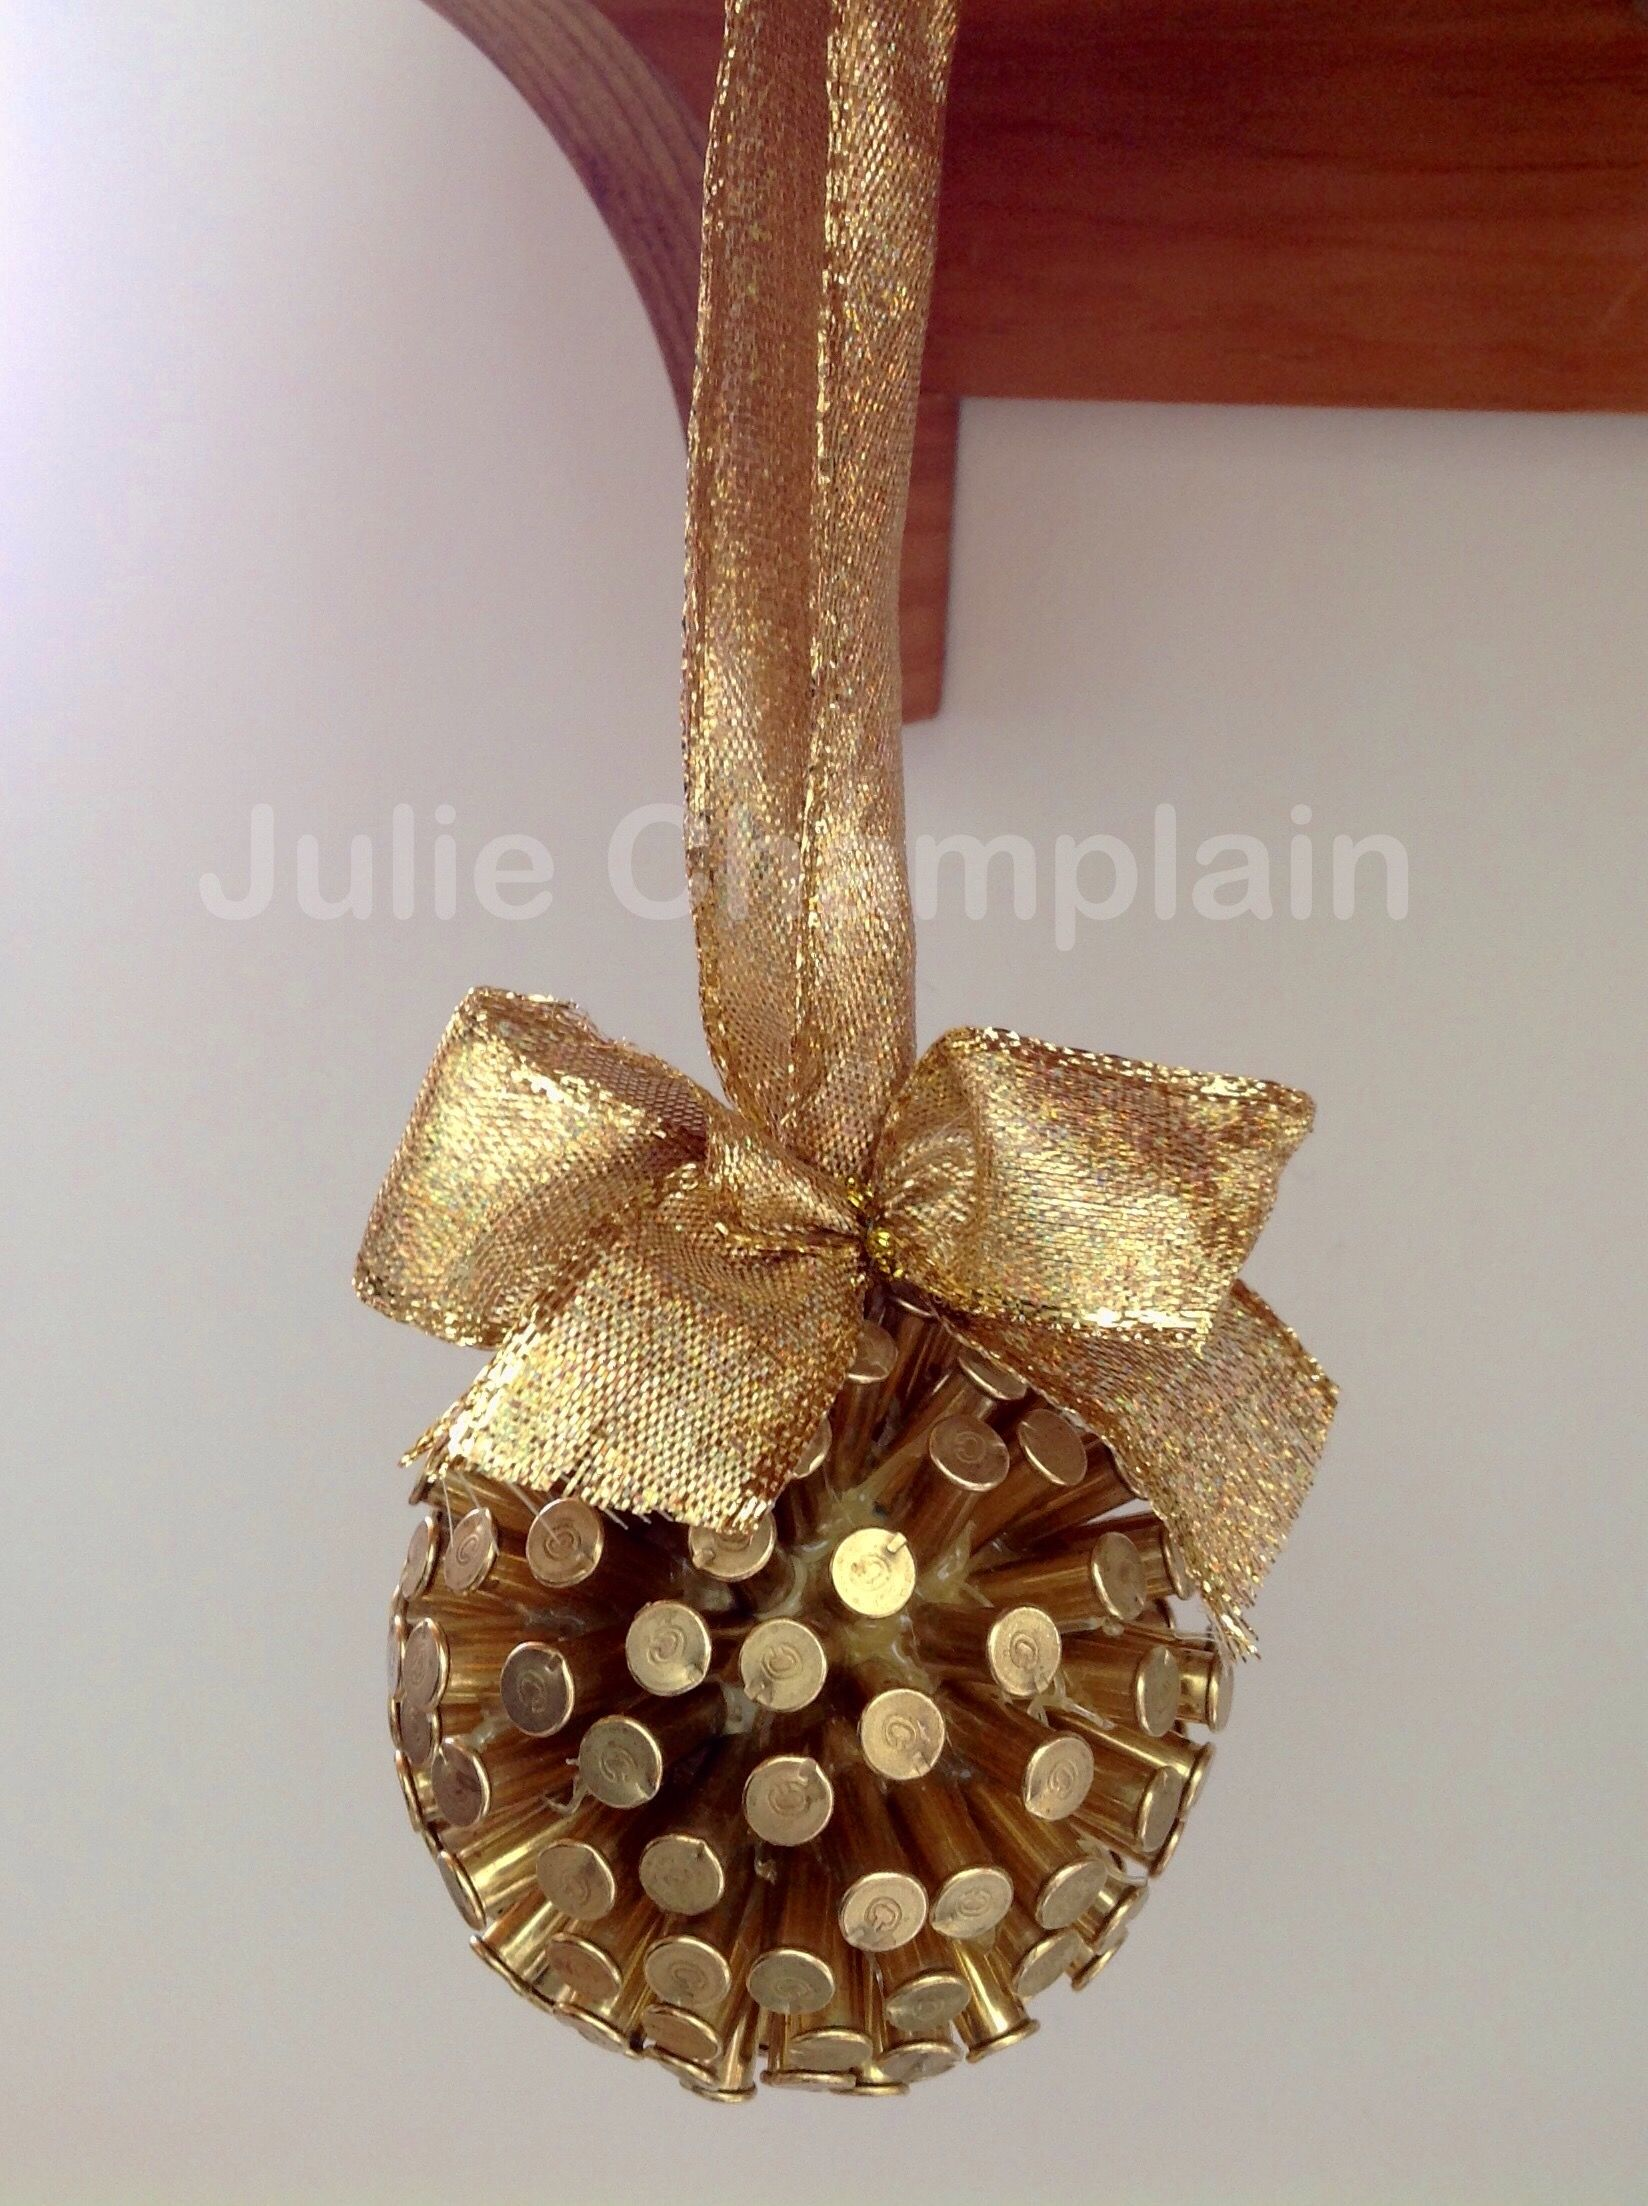 Engagement ring christmas ornament - I Made This Christmas Ornament From Spent 22 Brass Bullet Casings Hot Glued On